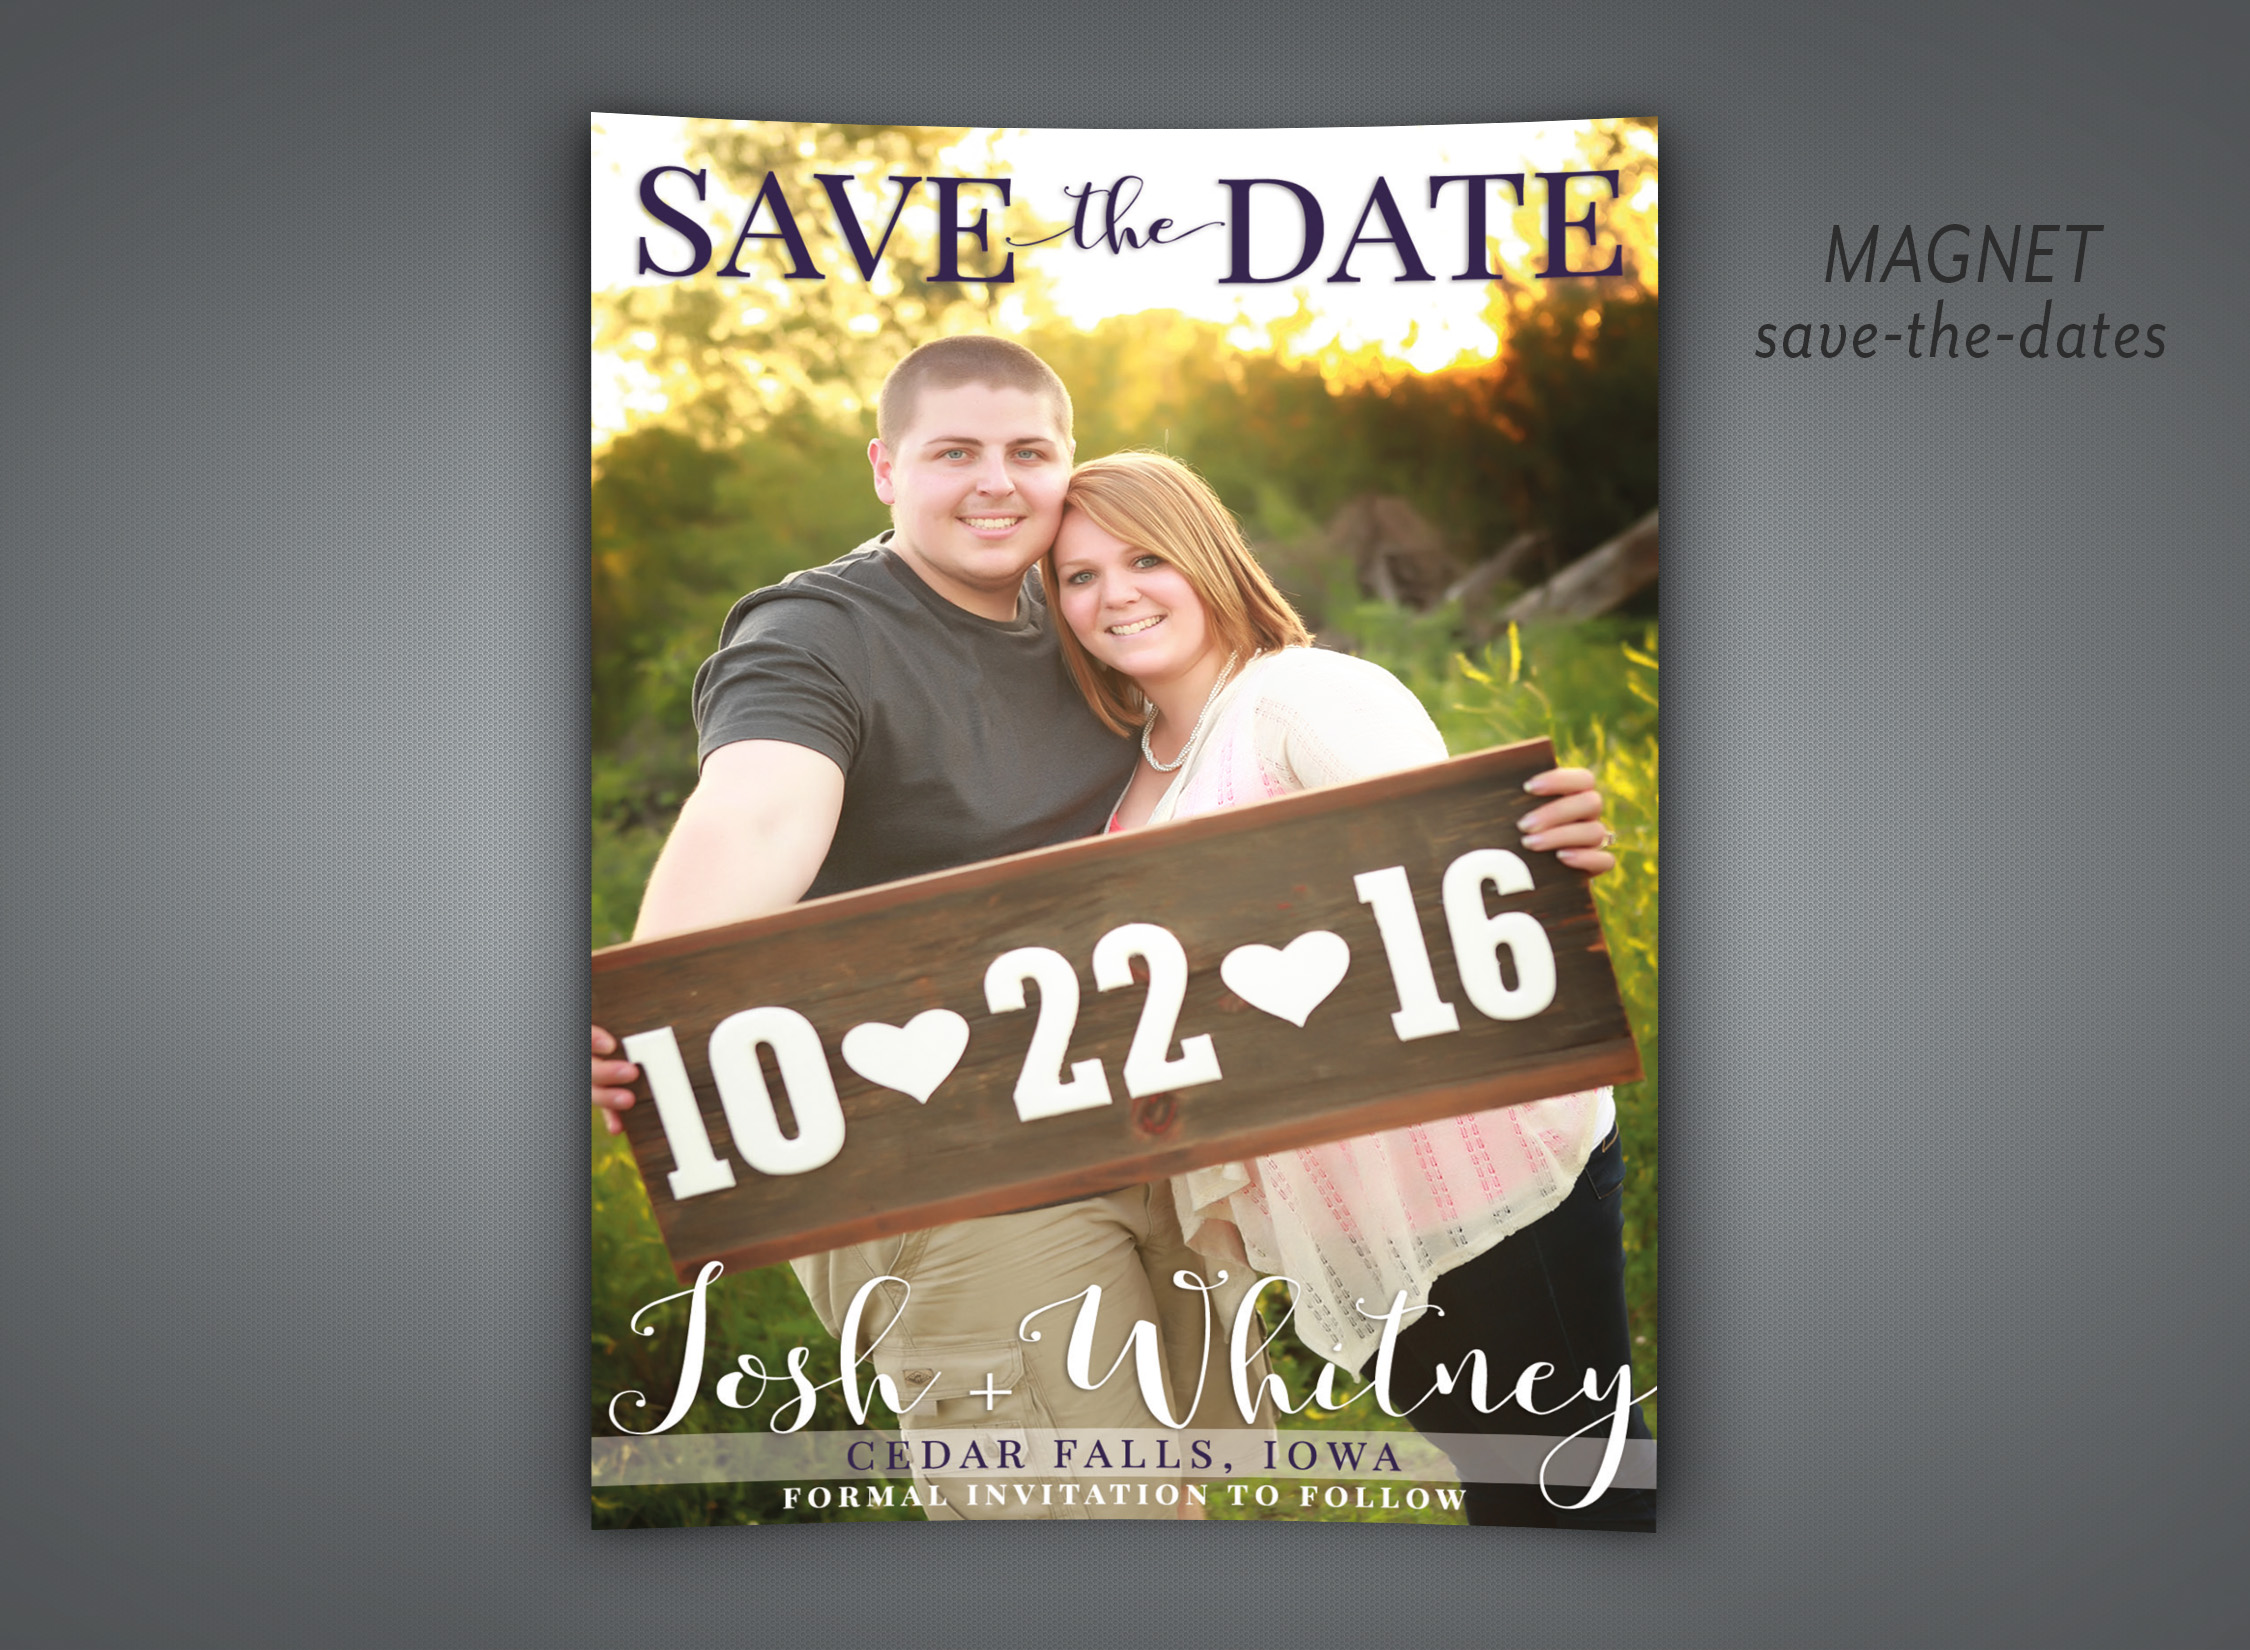 Magnet save-the-dates